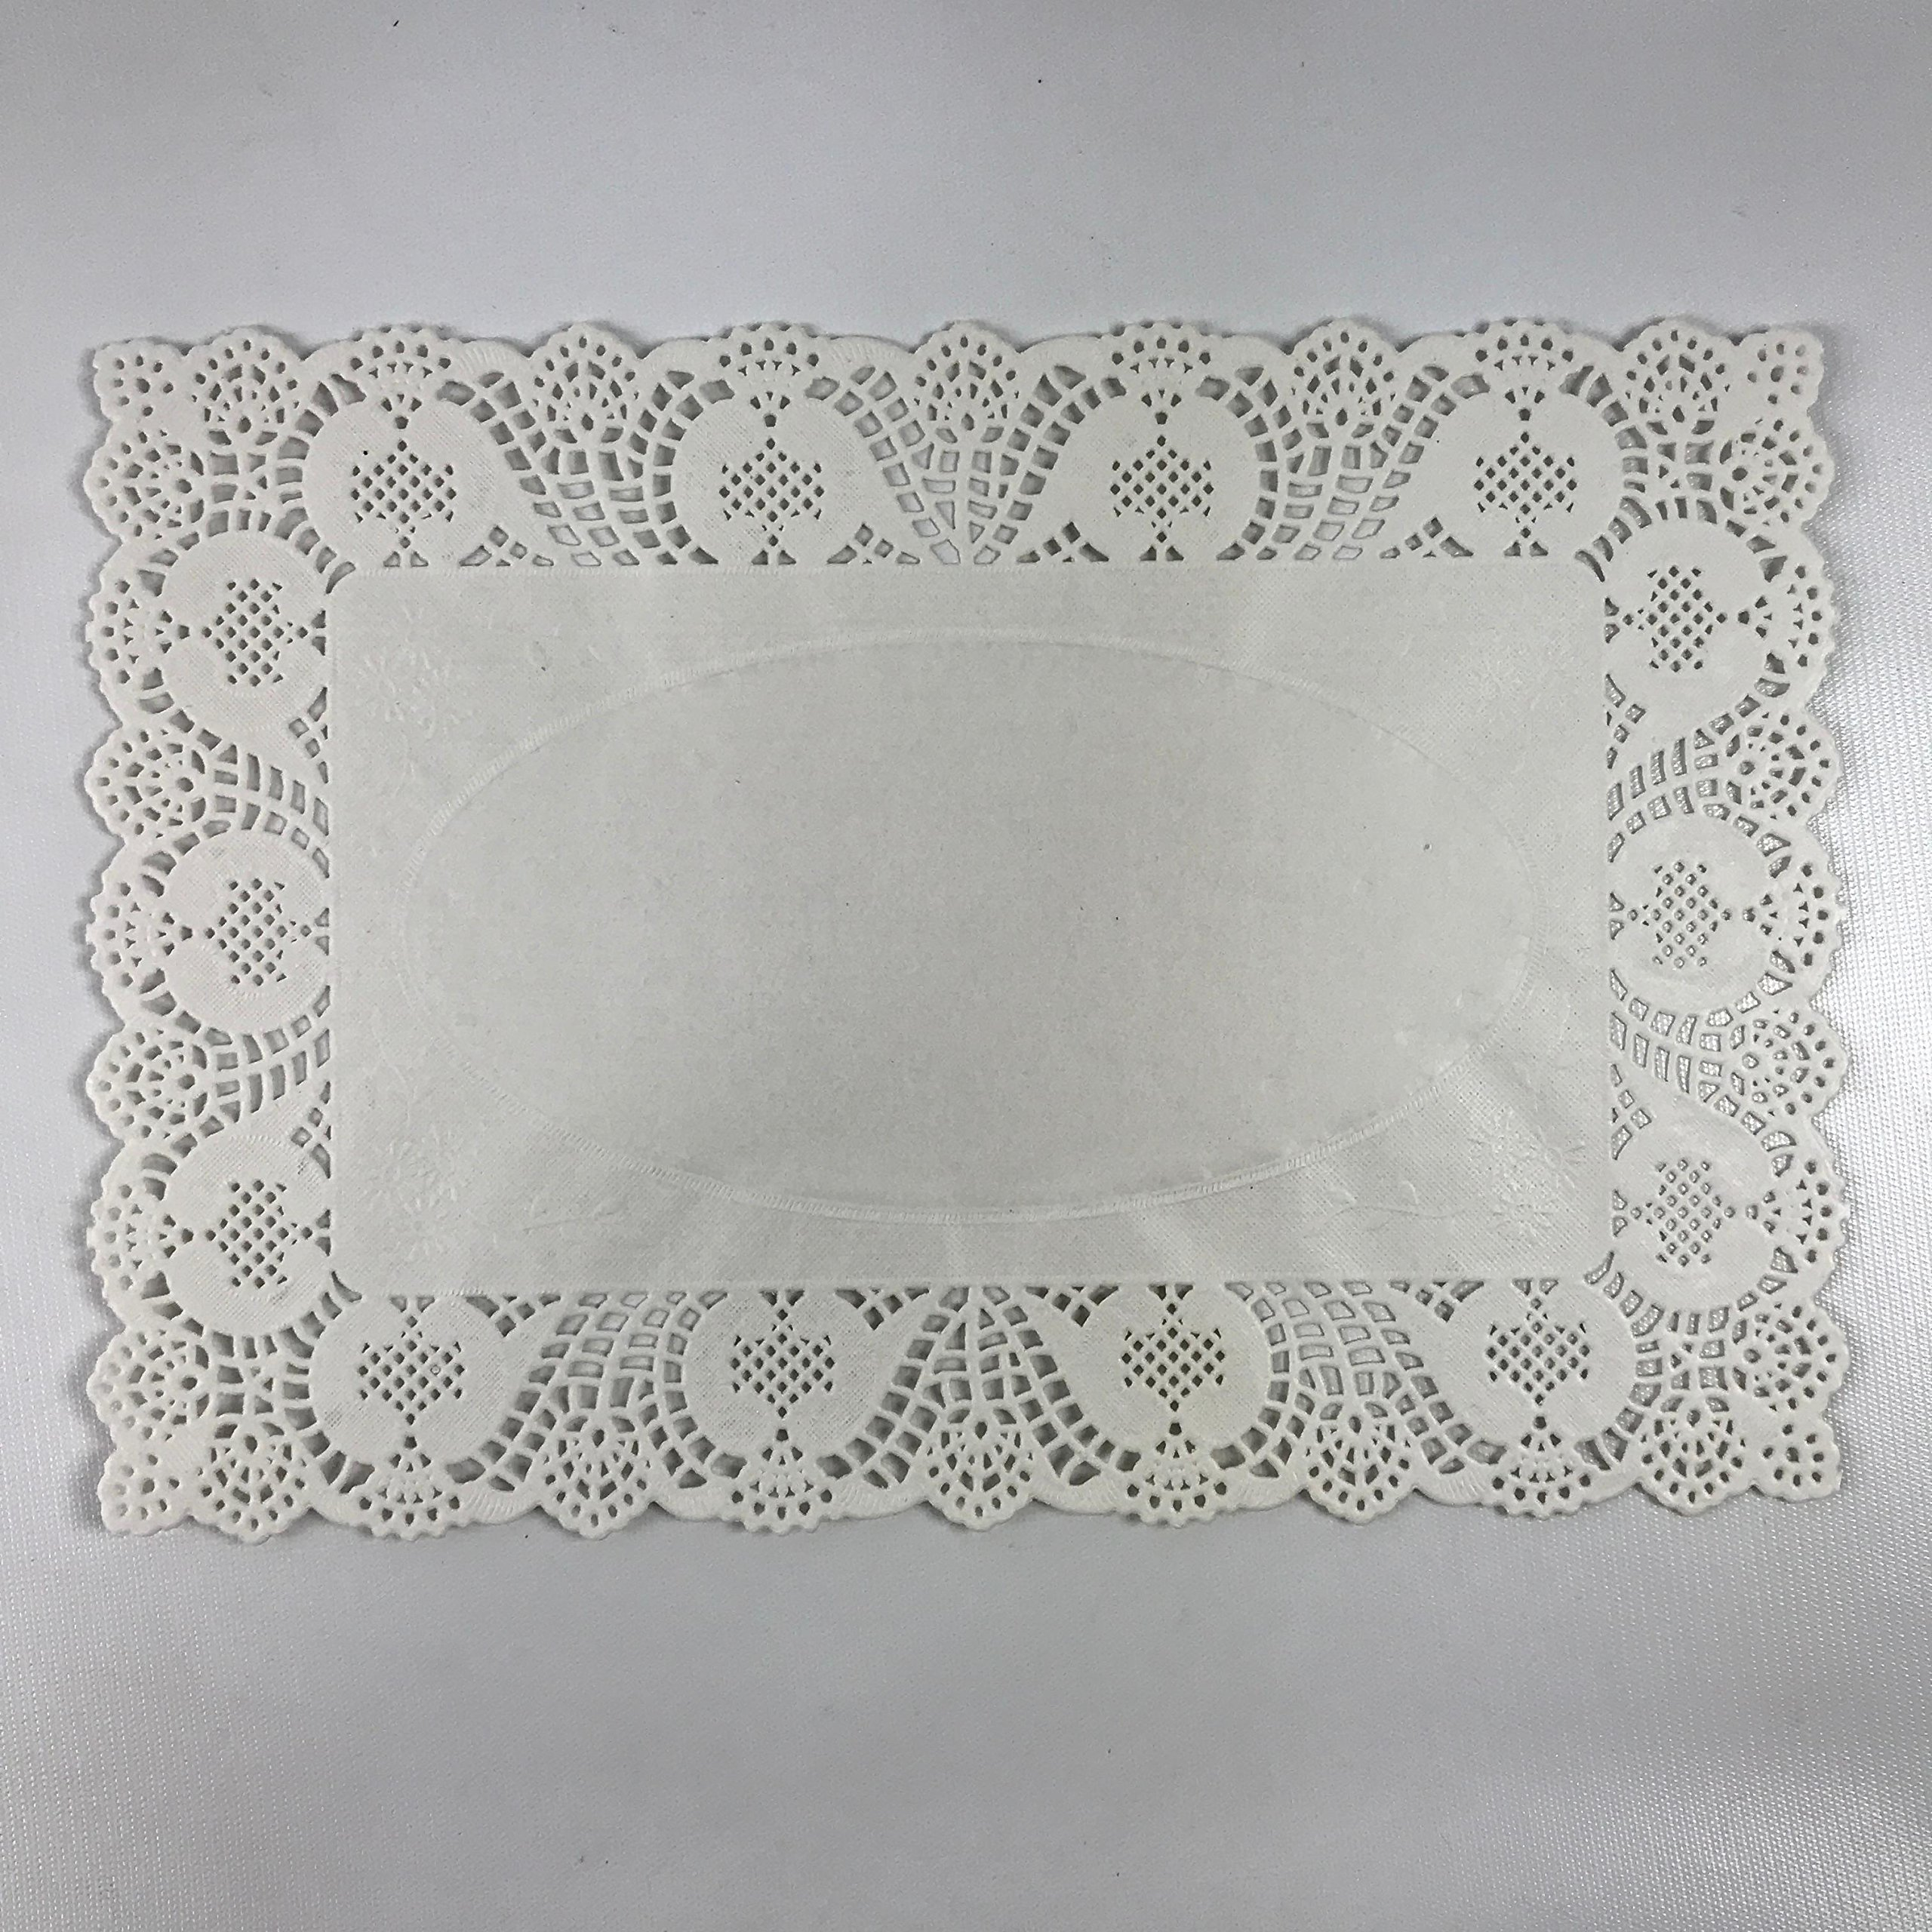 (Pack of 50) Black Cat Avenue 10'' x 14 1/2'' Disposable White Rectangular Lace Paper Doilies